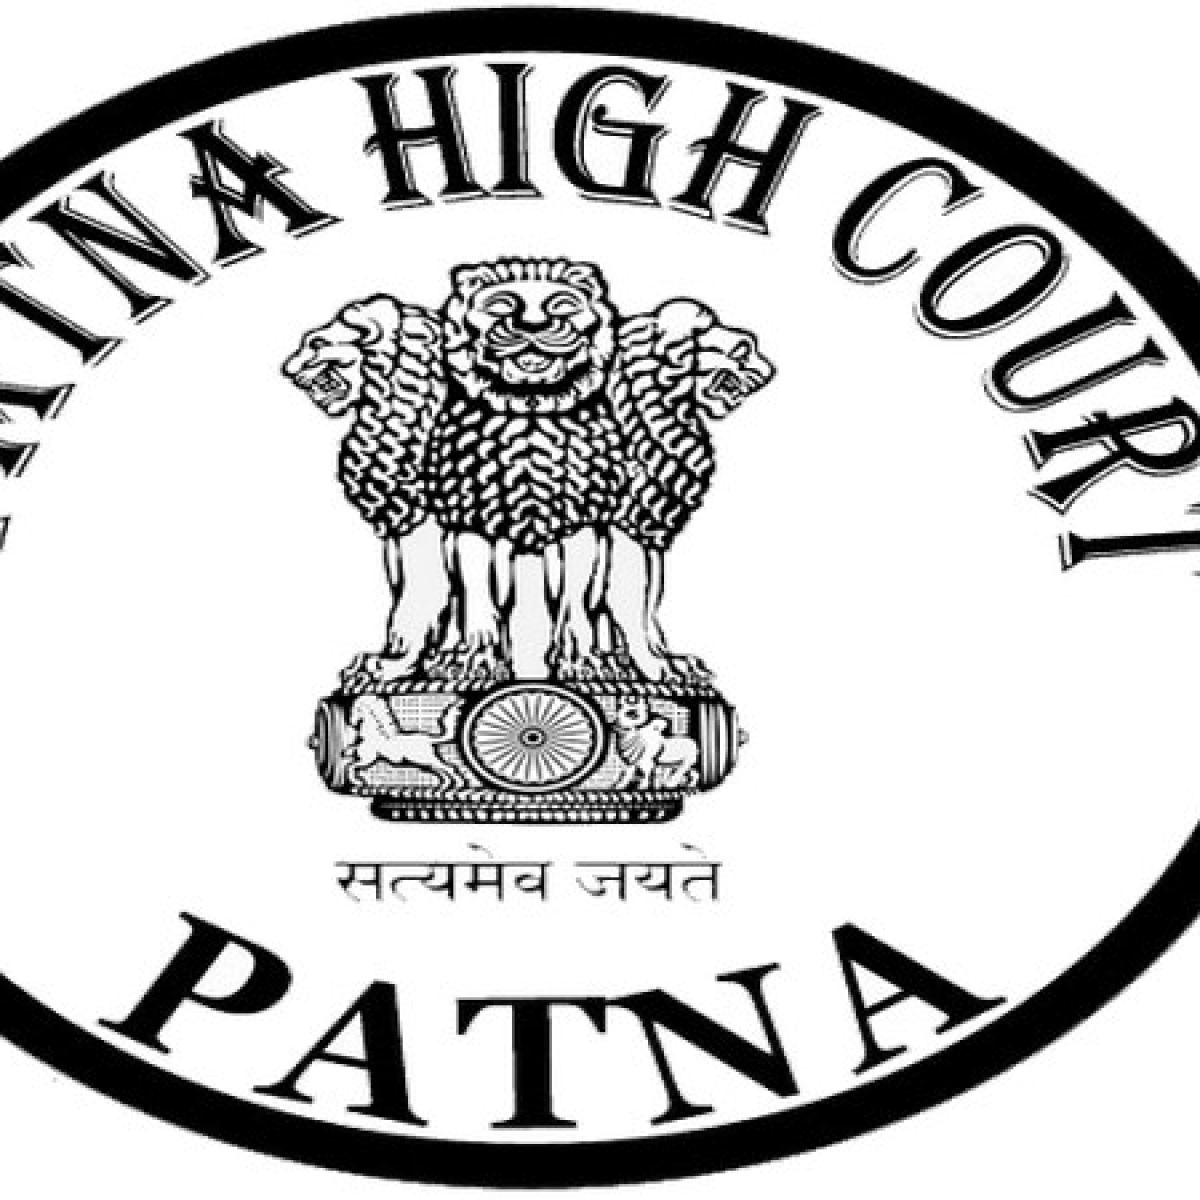 Bihar: Cases withdrawn from HC Judge who criticised fellow Judges in Patna